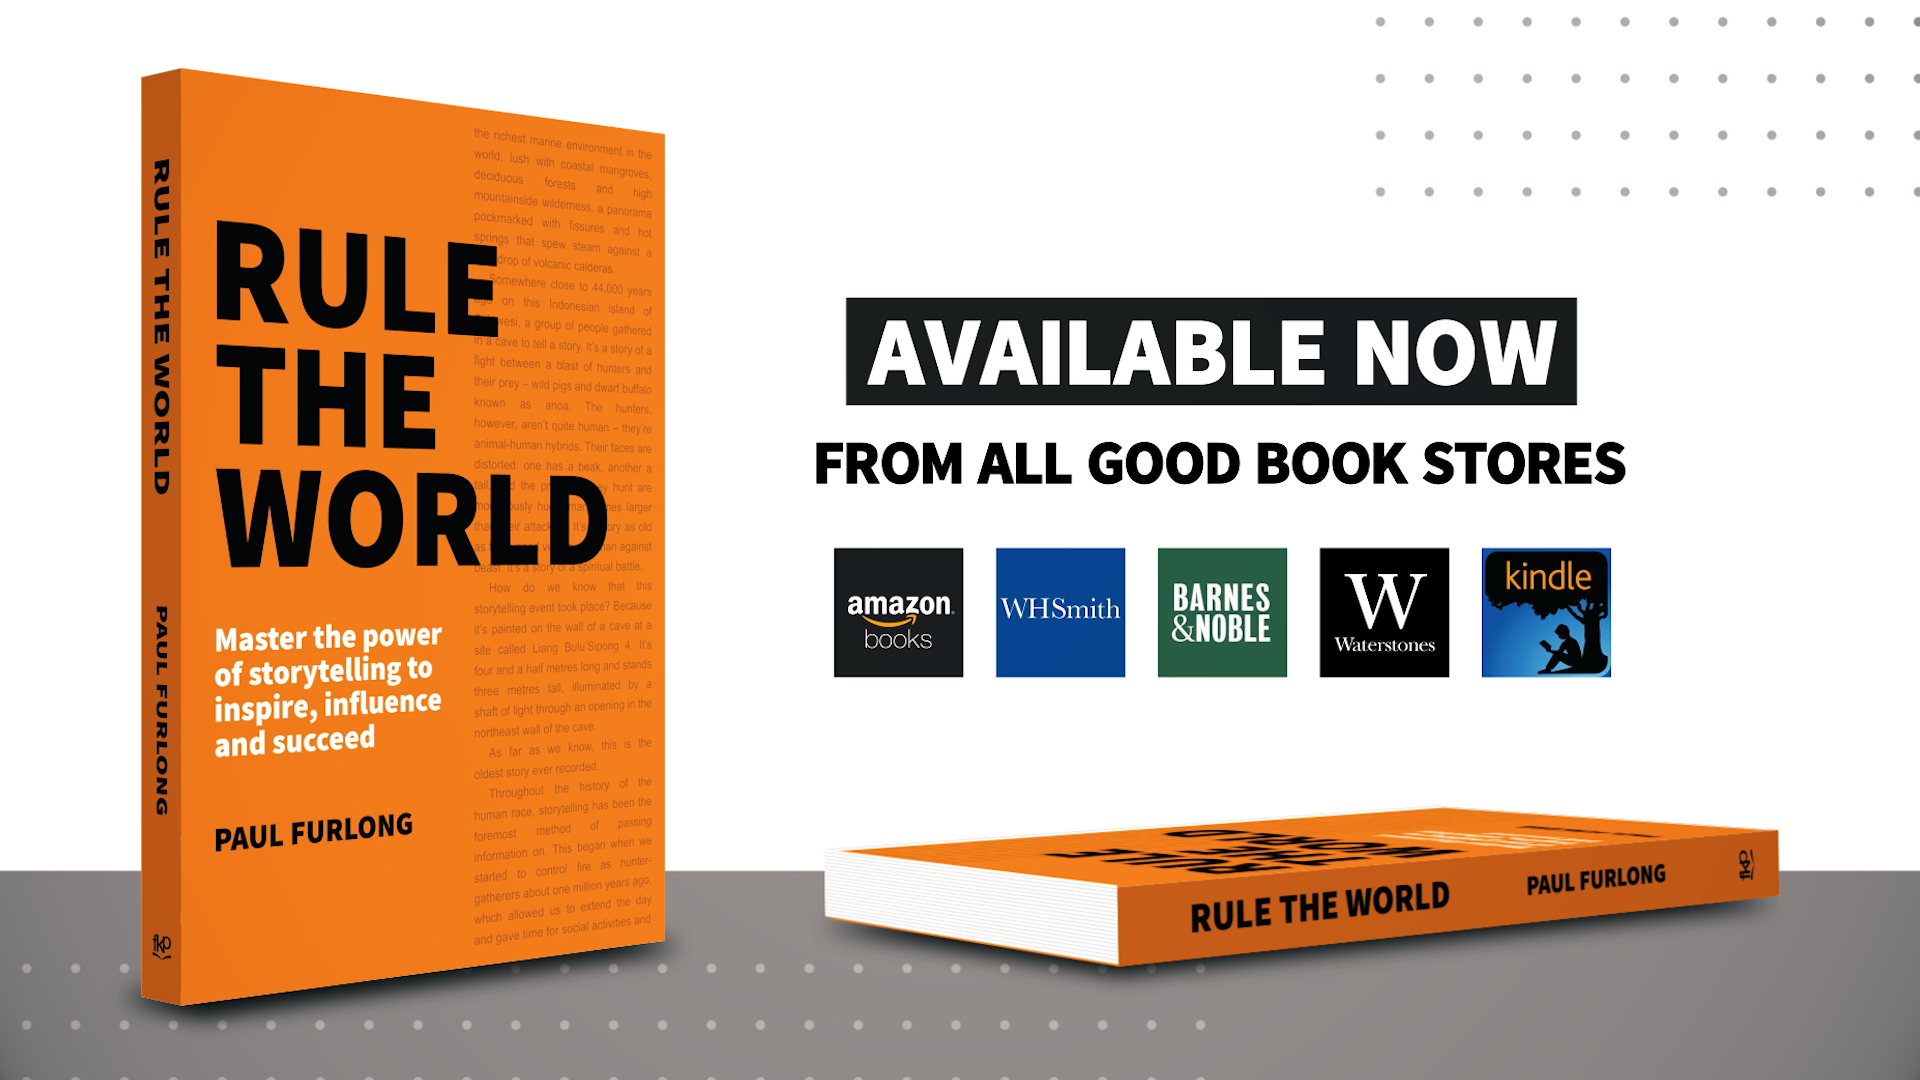 Rave reviews for new Paul Furlong book on power of corporate storytelling